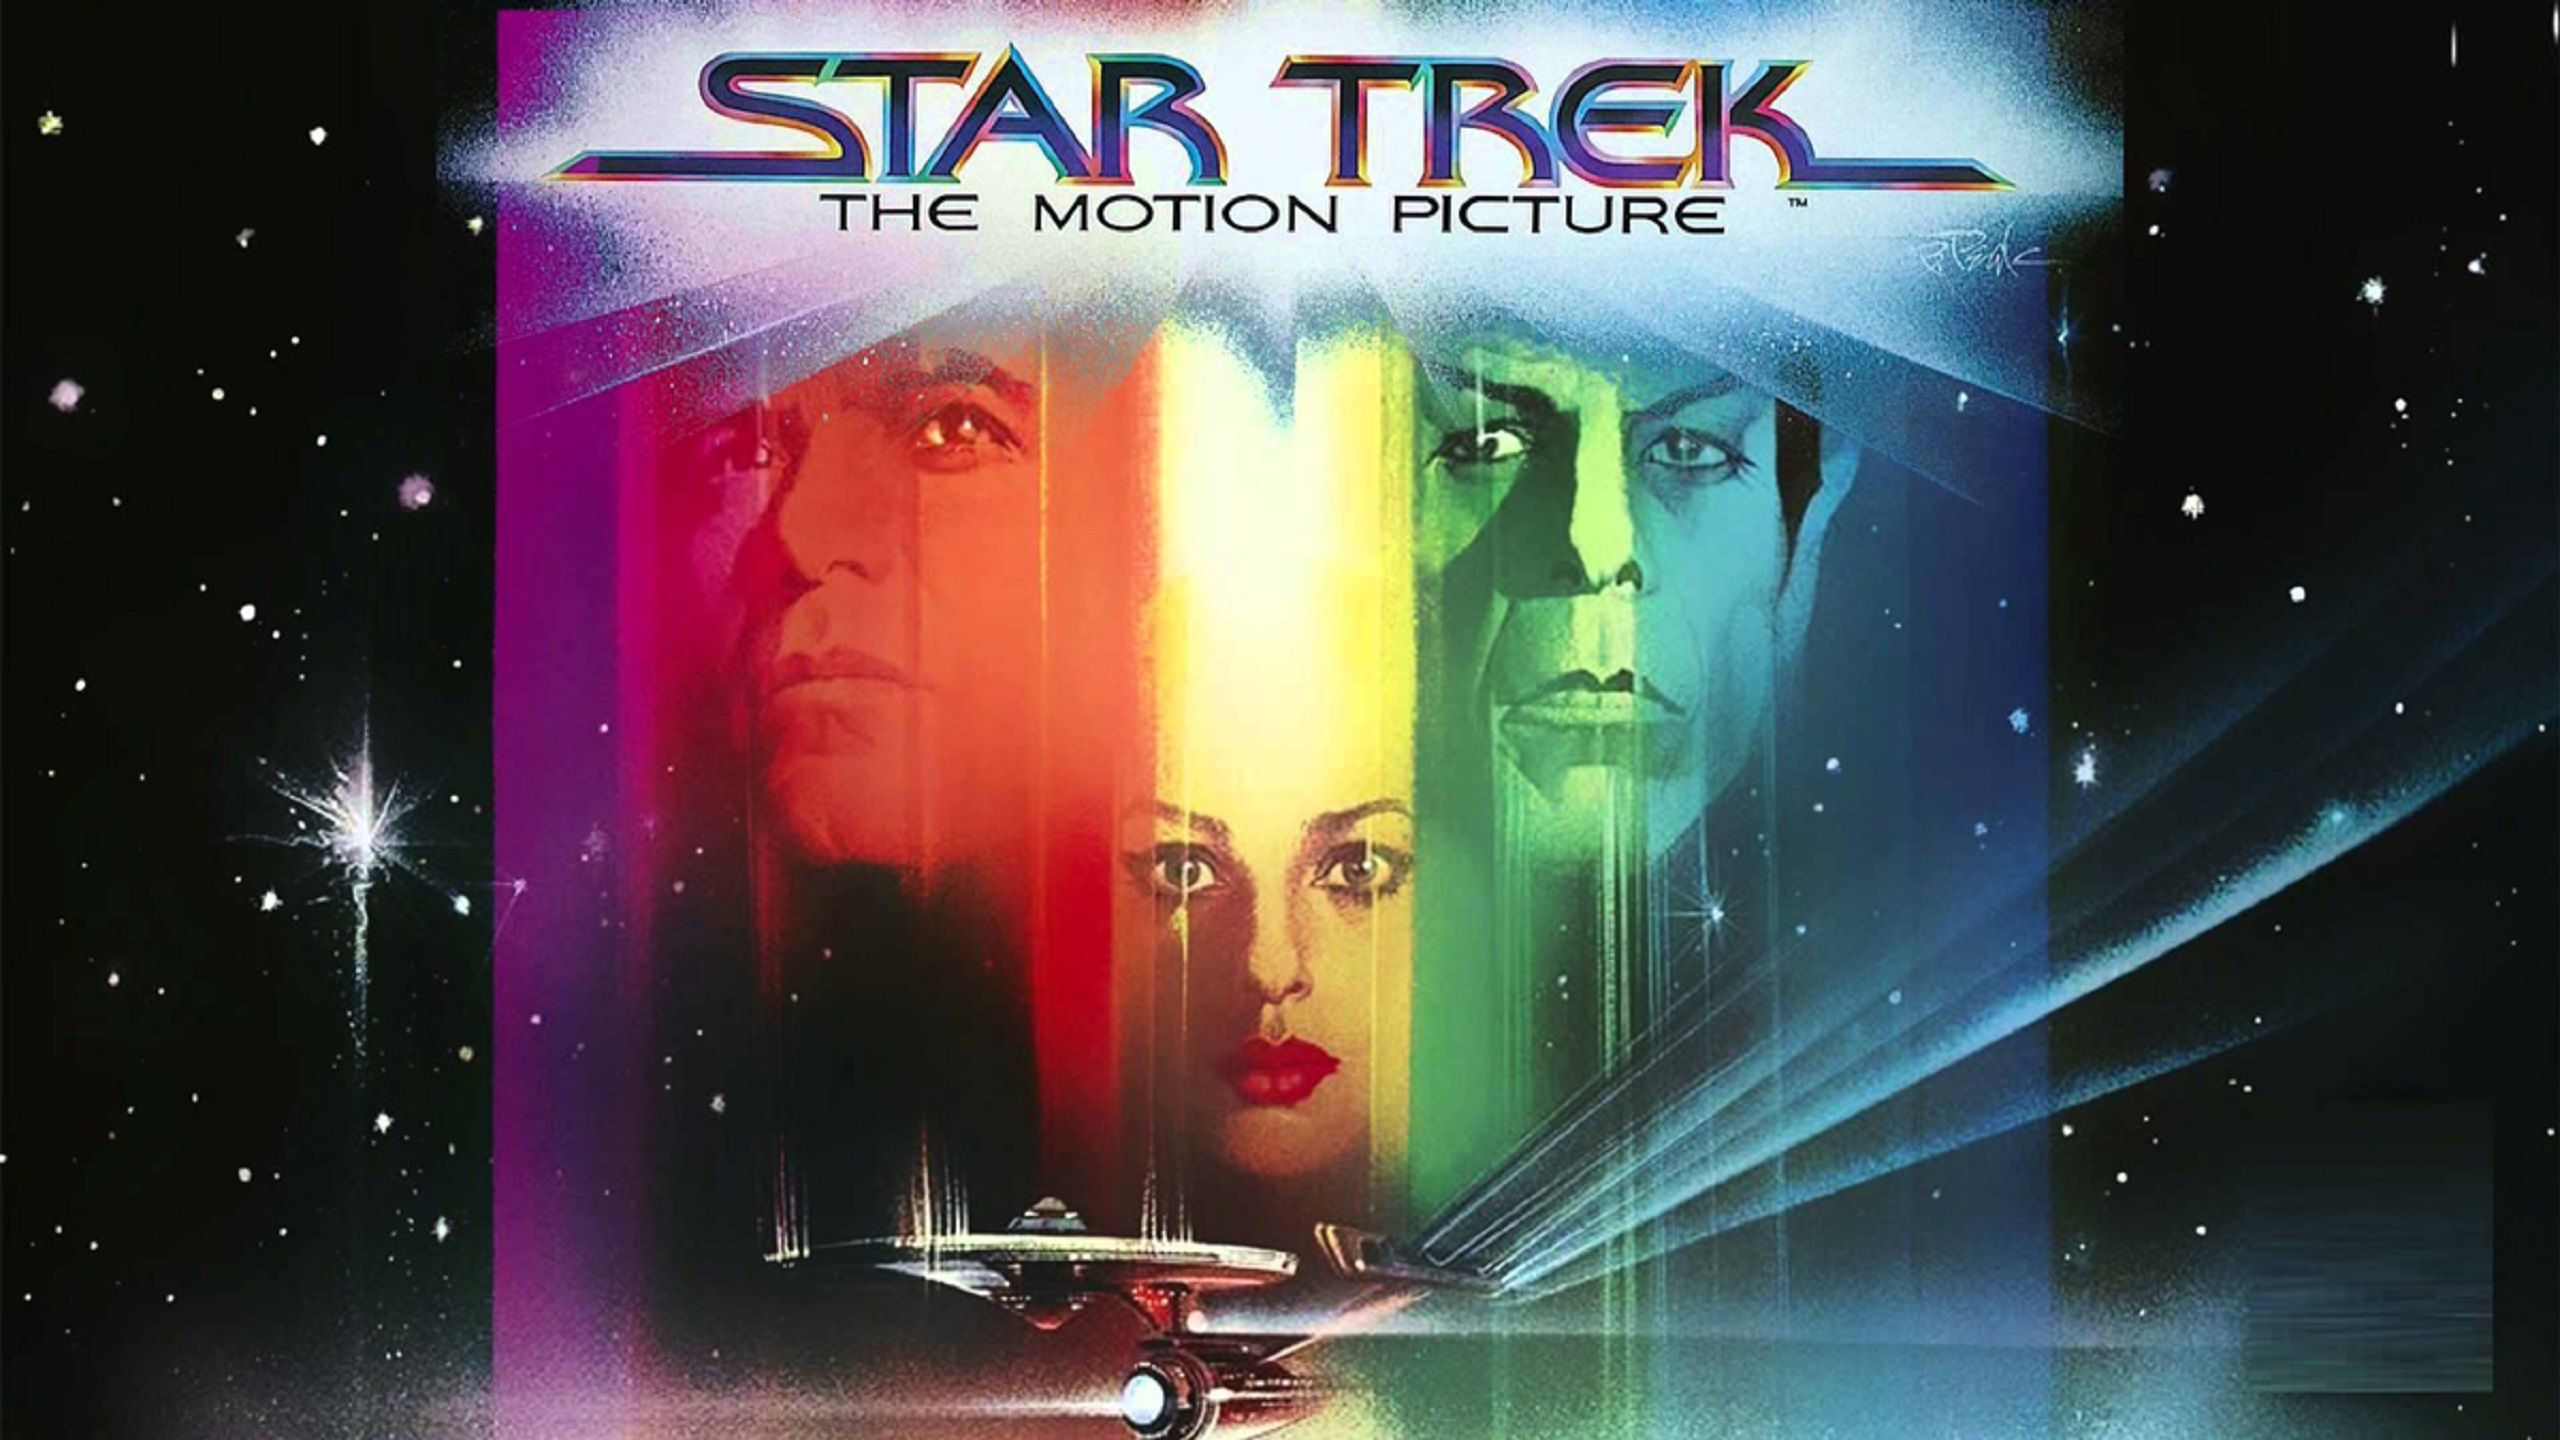 Star Trek 1 - il Film - the motion picture (1979) wallpaper and poster